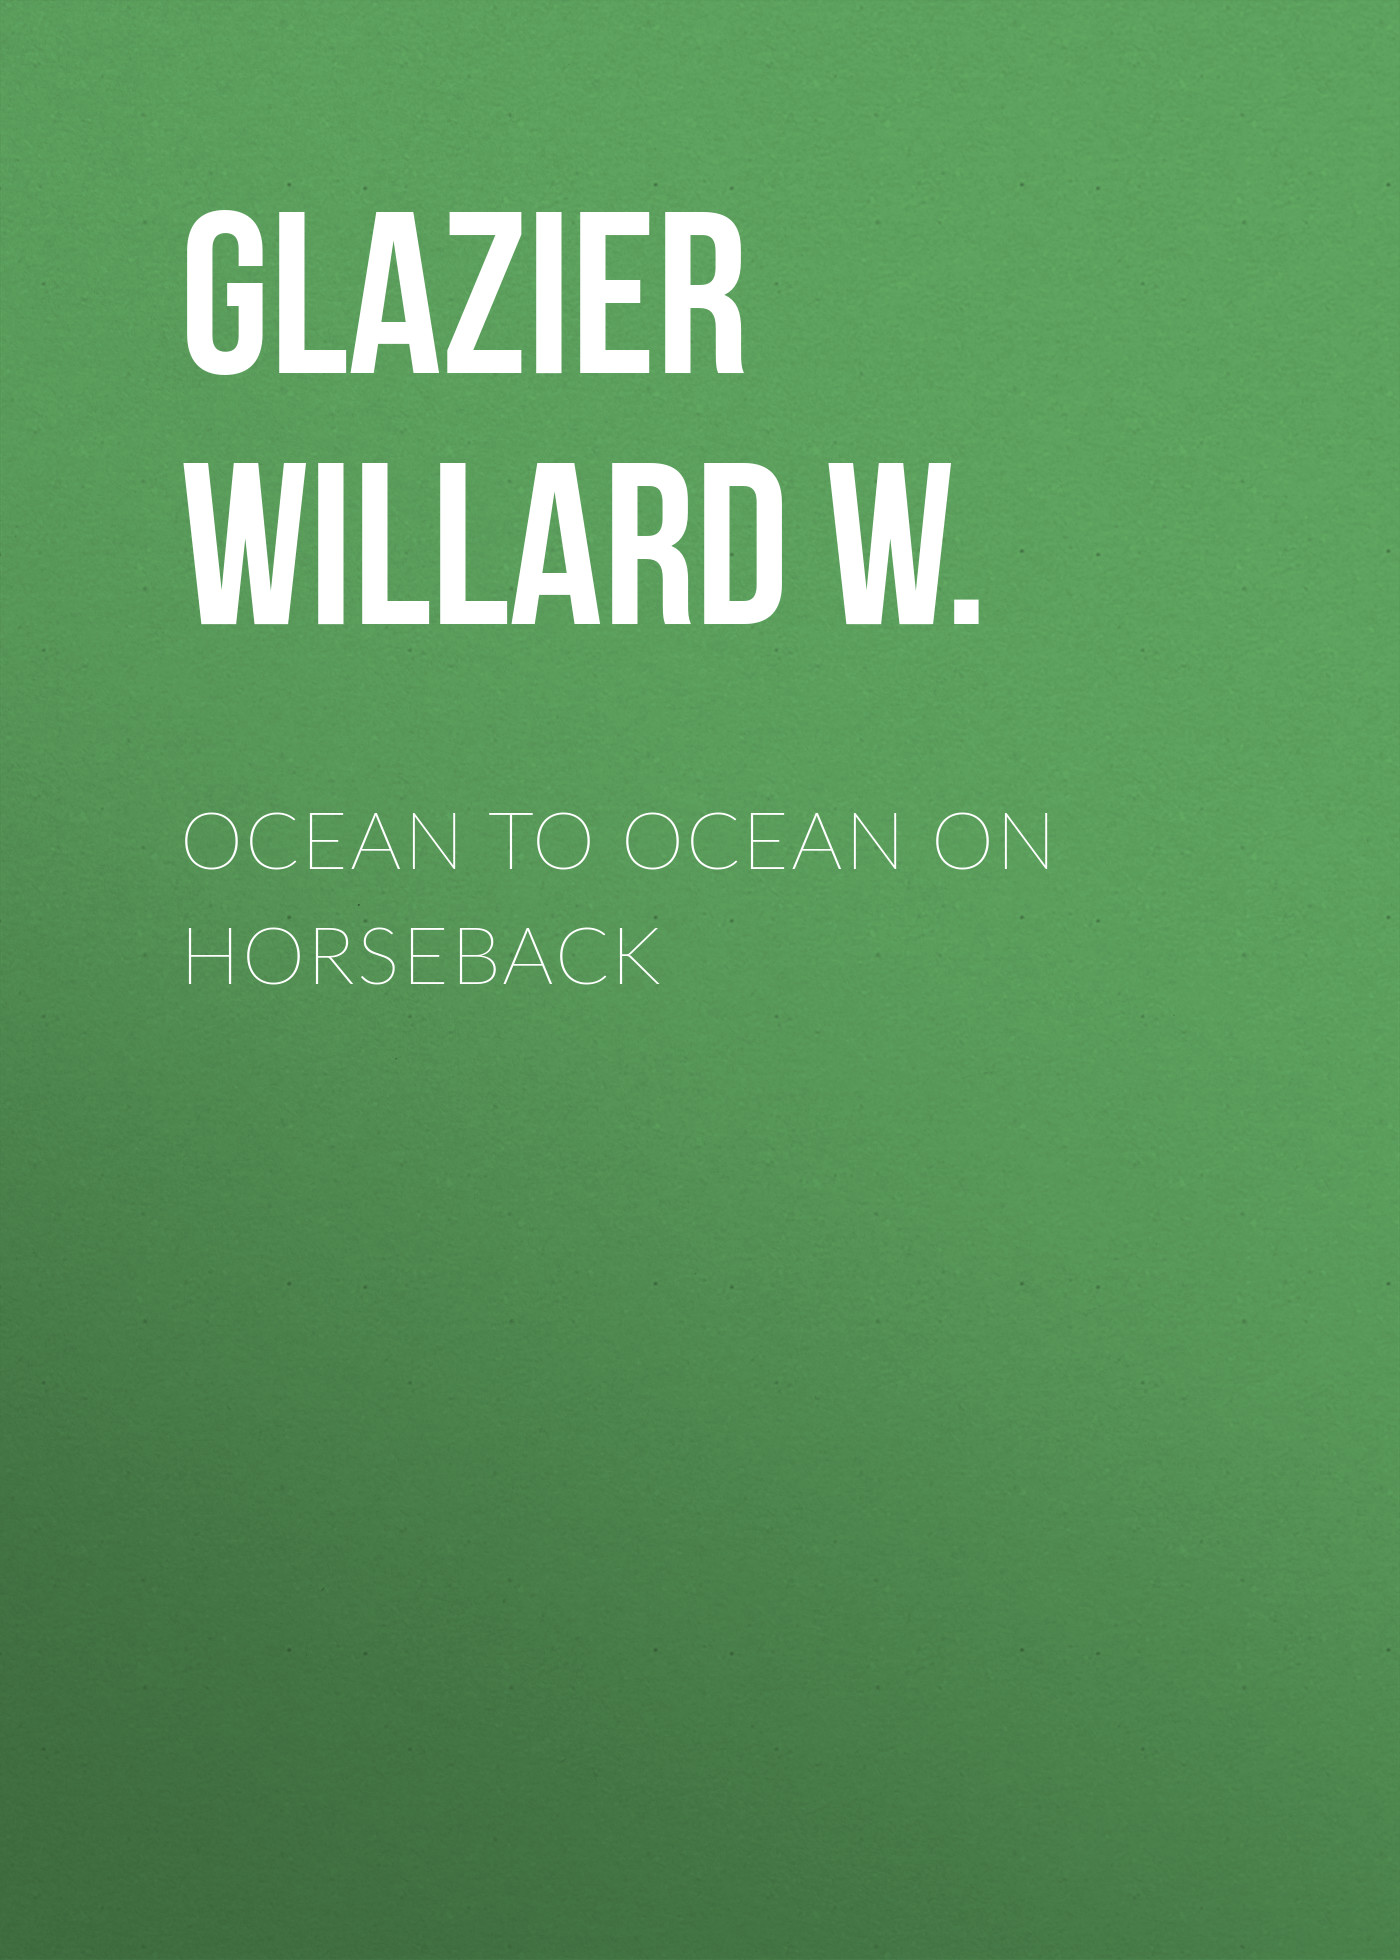 Glazier Willard W. Ocean to Ocean on Horseback подвесная люстра mw light ангел 295010903